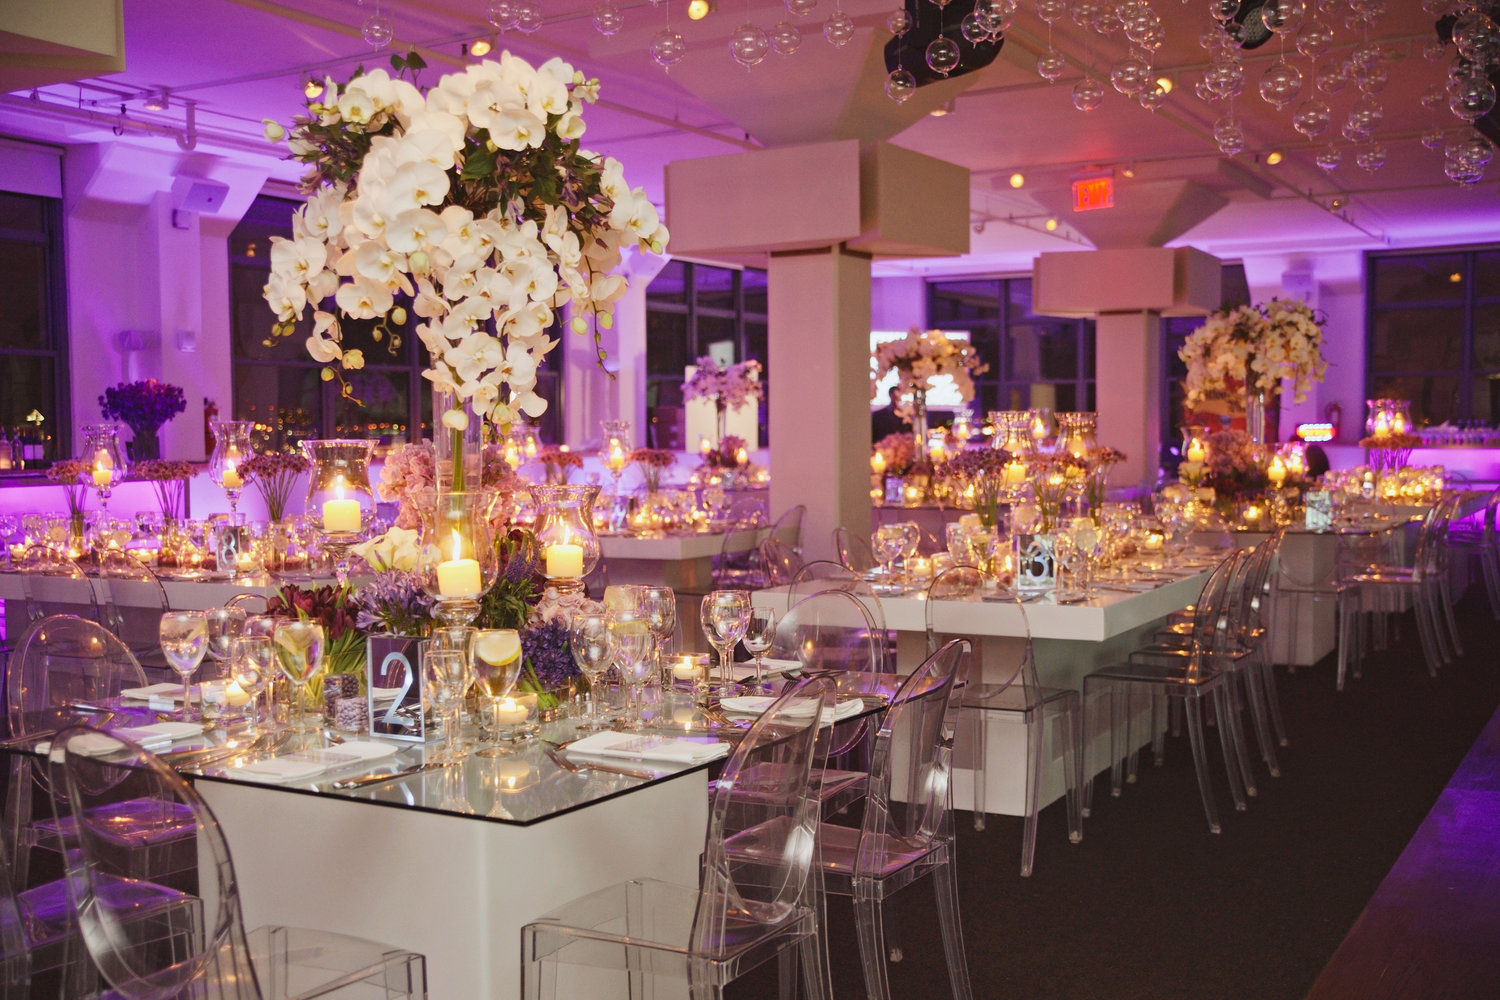 Julia's Winter Wonderland Bat Mitzvah - NYLUX Events